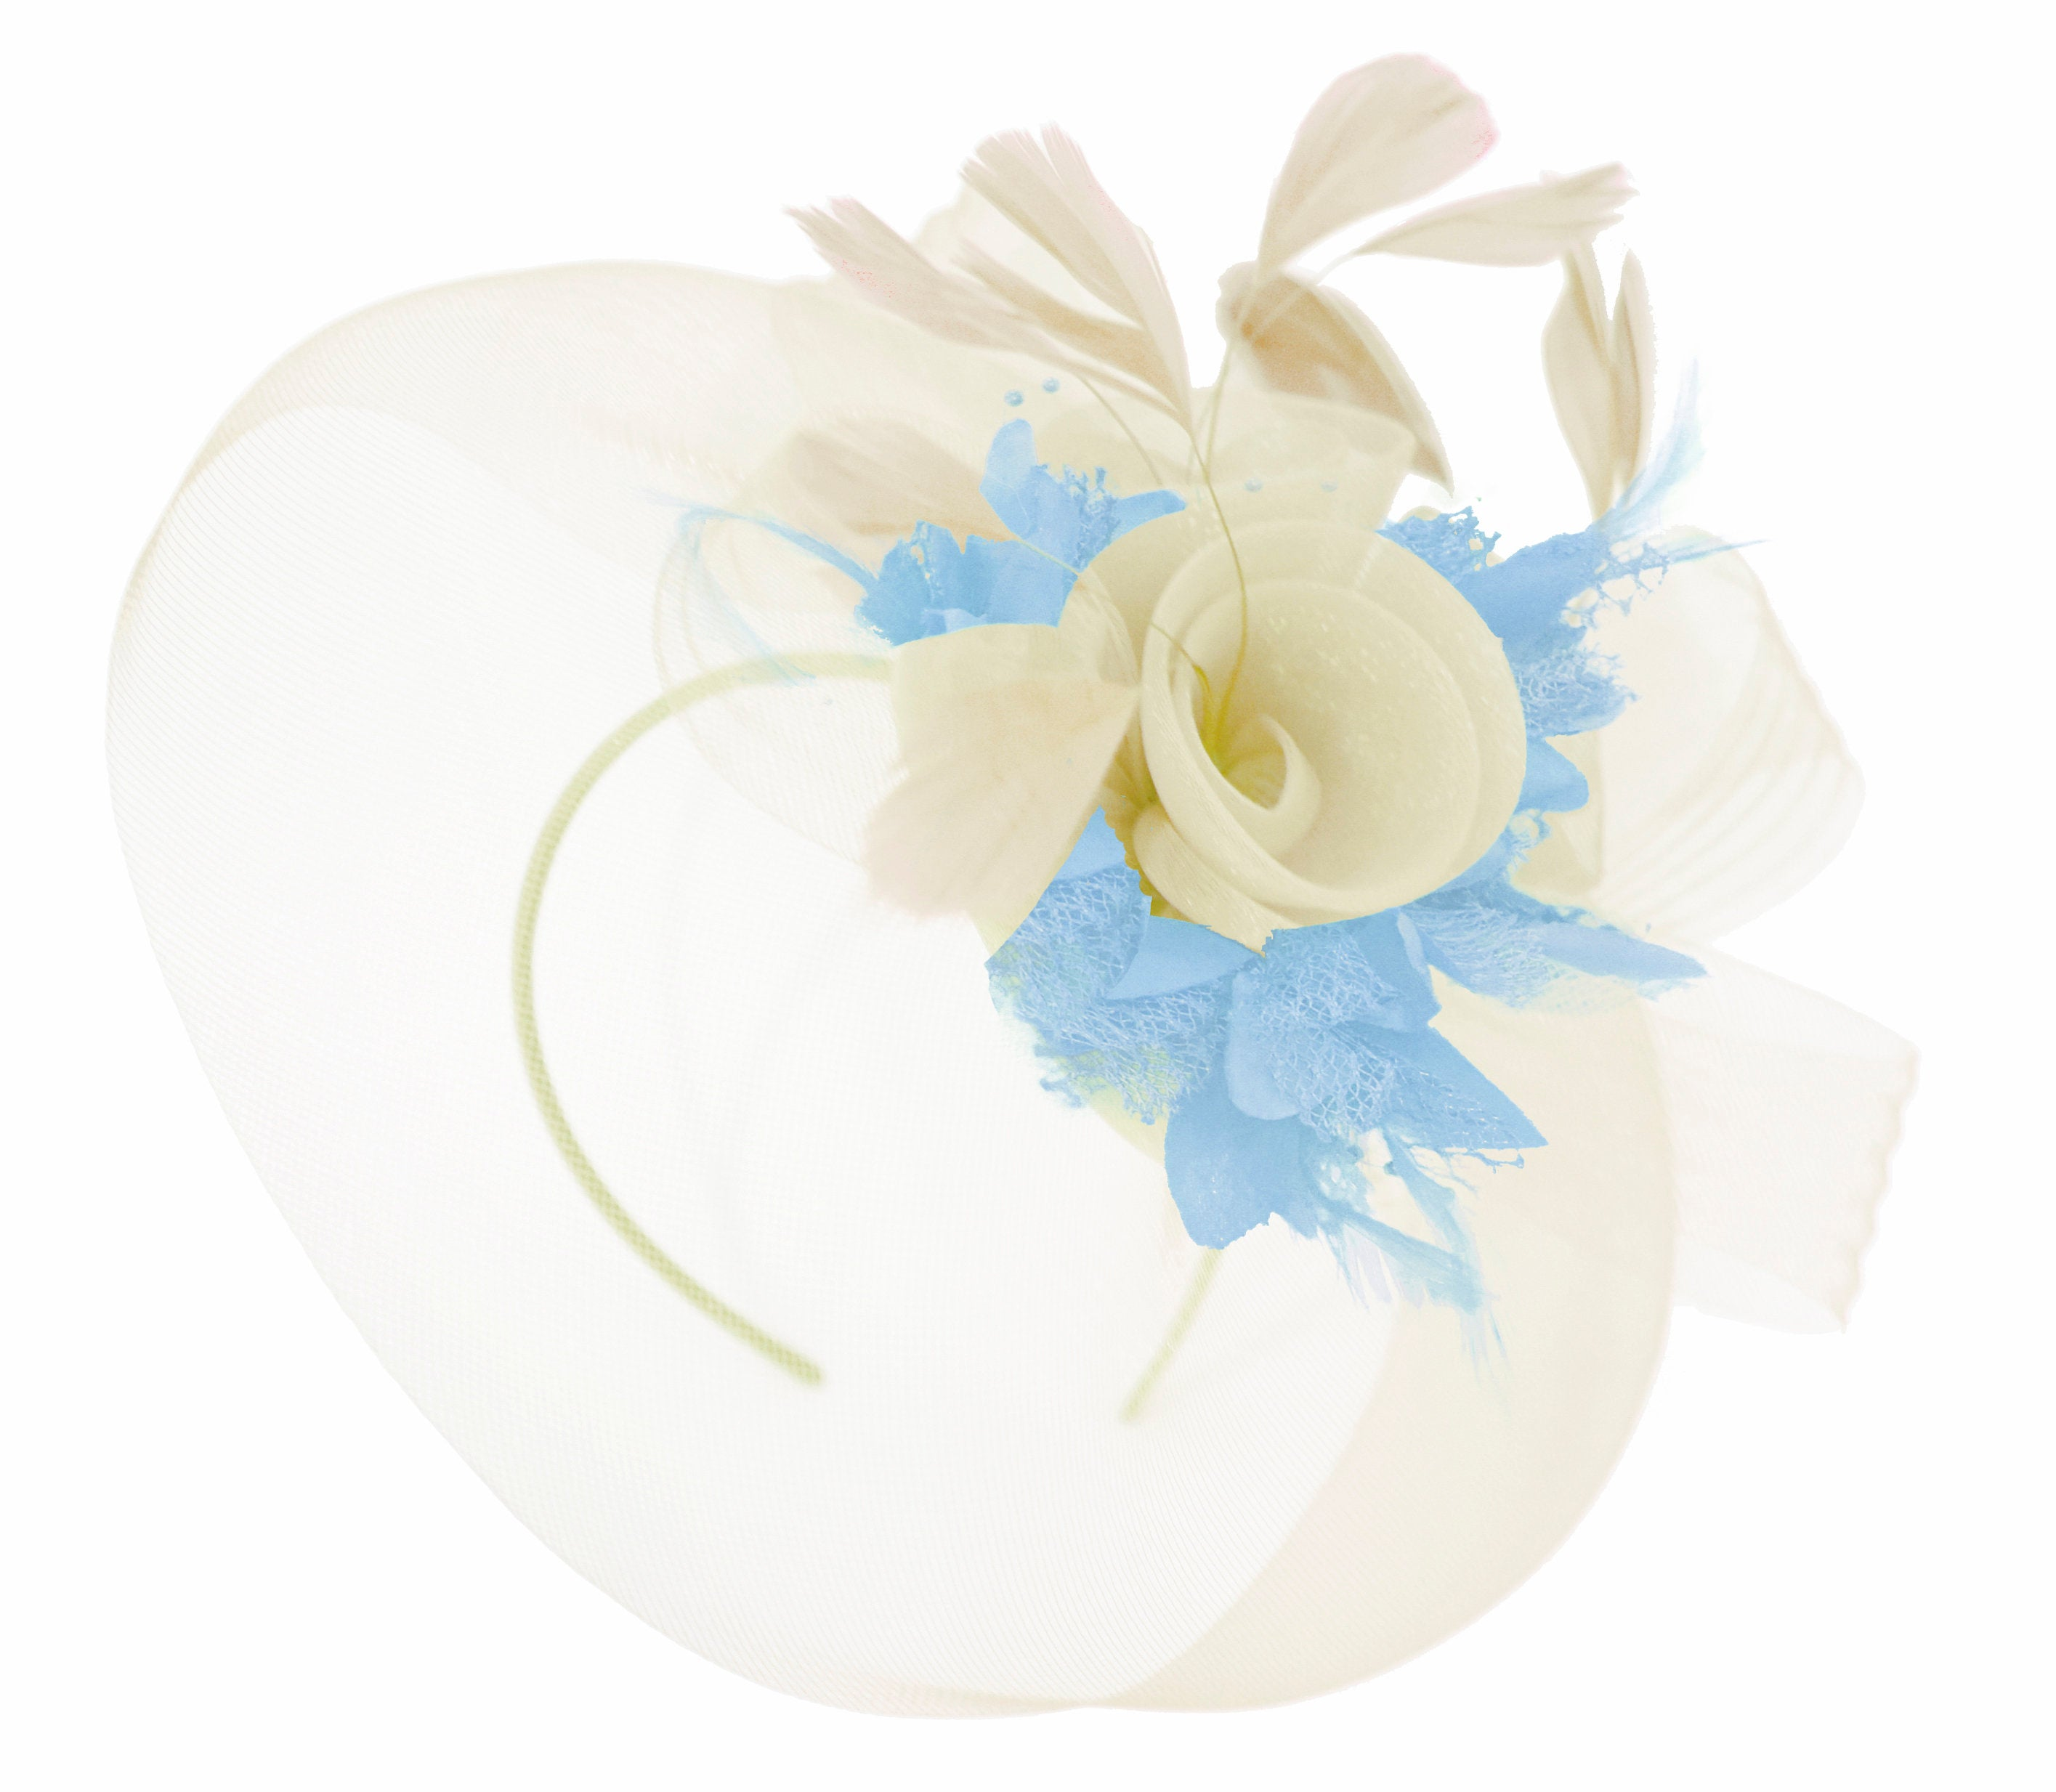 Caprilite Cream and Light Baby Blue Fascinator on Headband Veil UK Wedding Ascot Races Hatinator Women